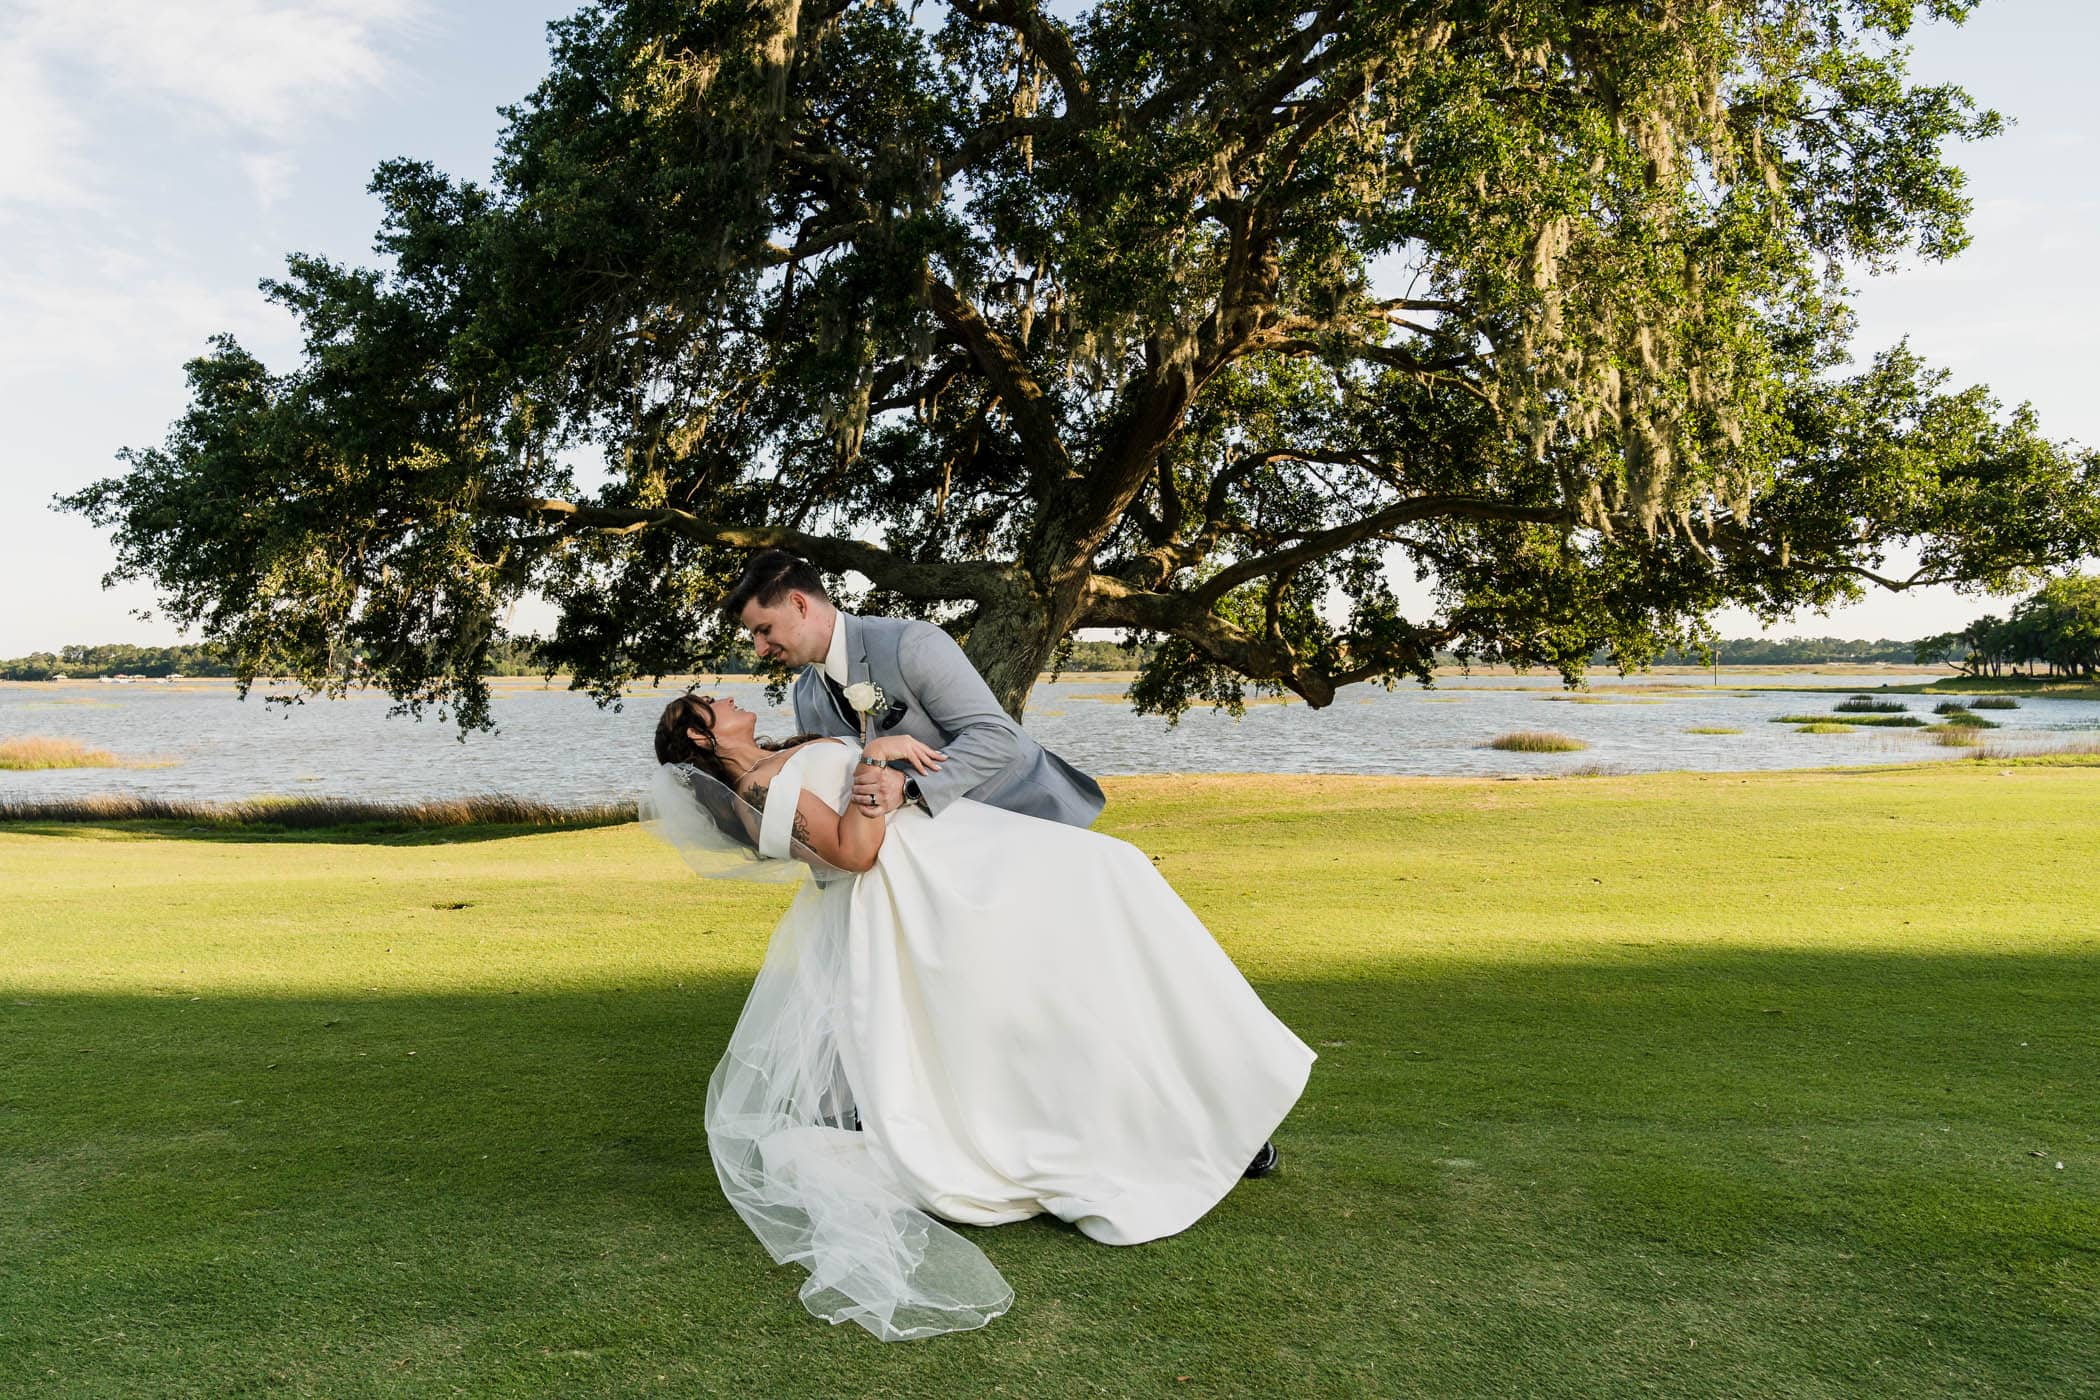 Groom dipping bride on the golf course at Dataw Island Club House by Susan DeLoach Photography SC wedding photographers